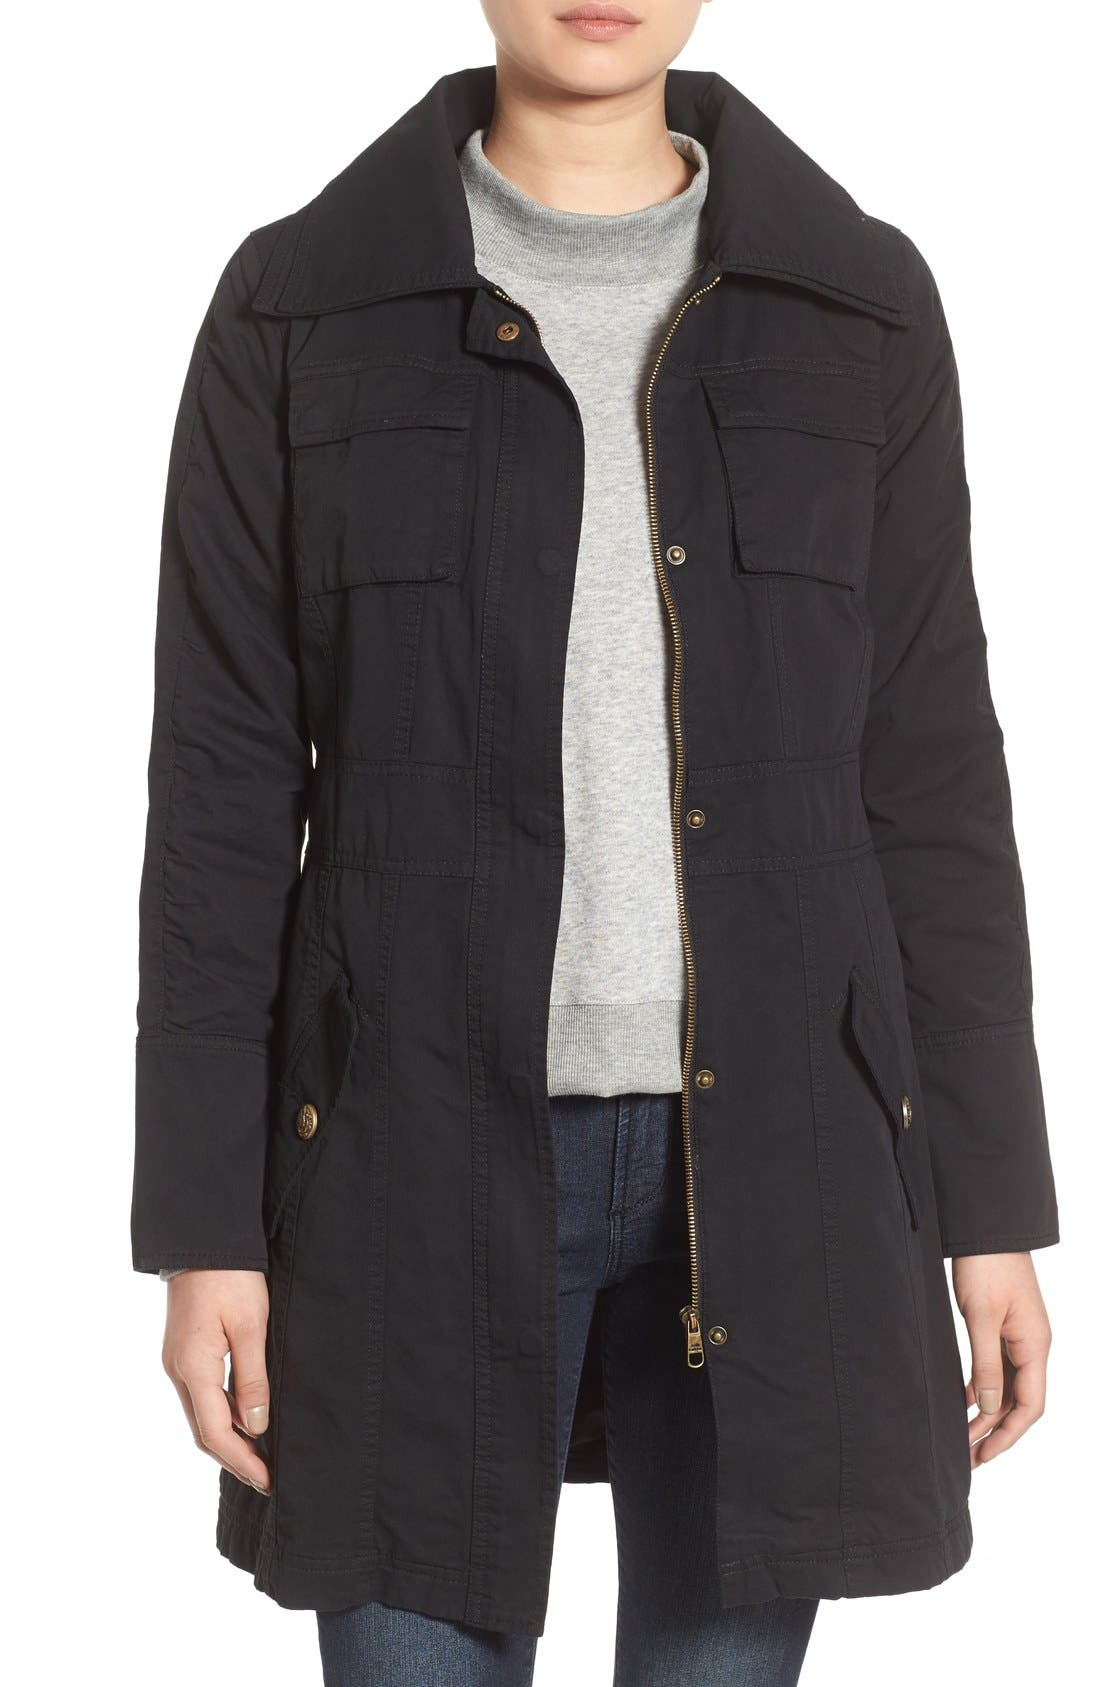 Alternate Image 1 Selected - Steve Madden Double Collar Army Jacket